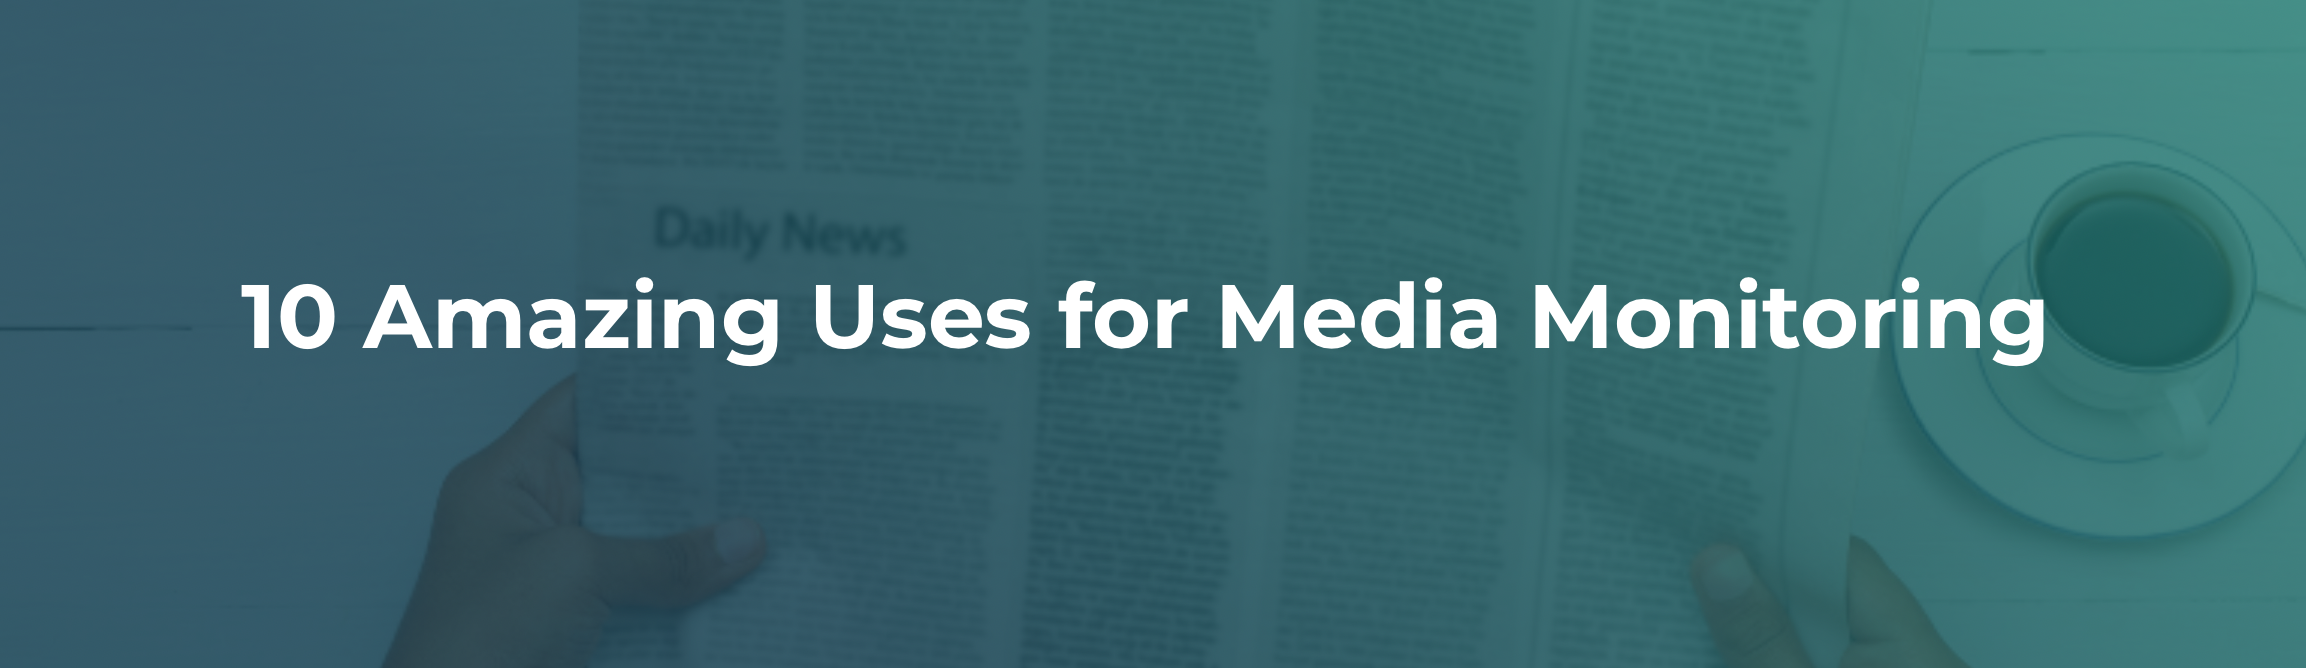 10 amazing uses for media monitoring via cision